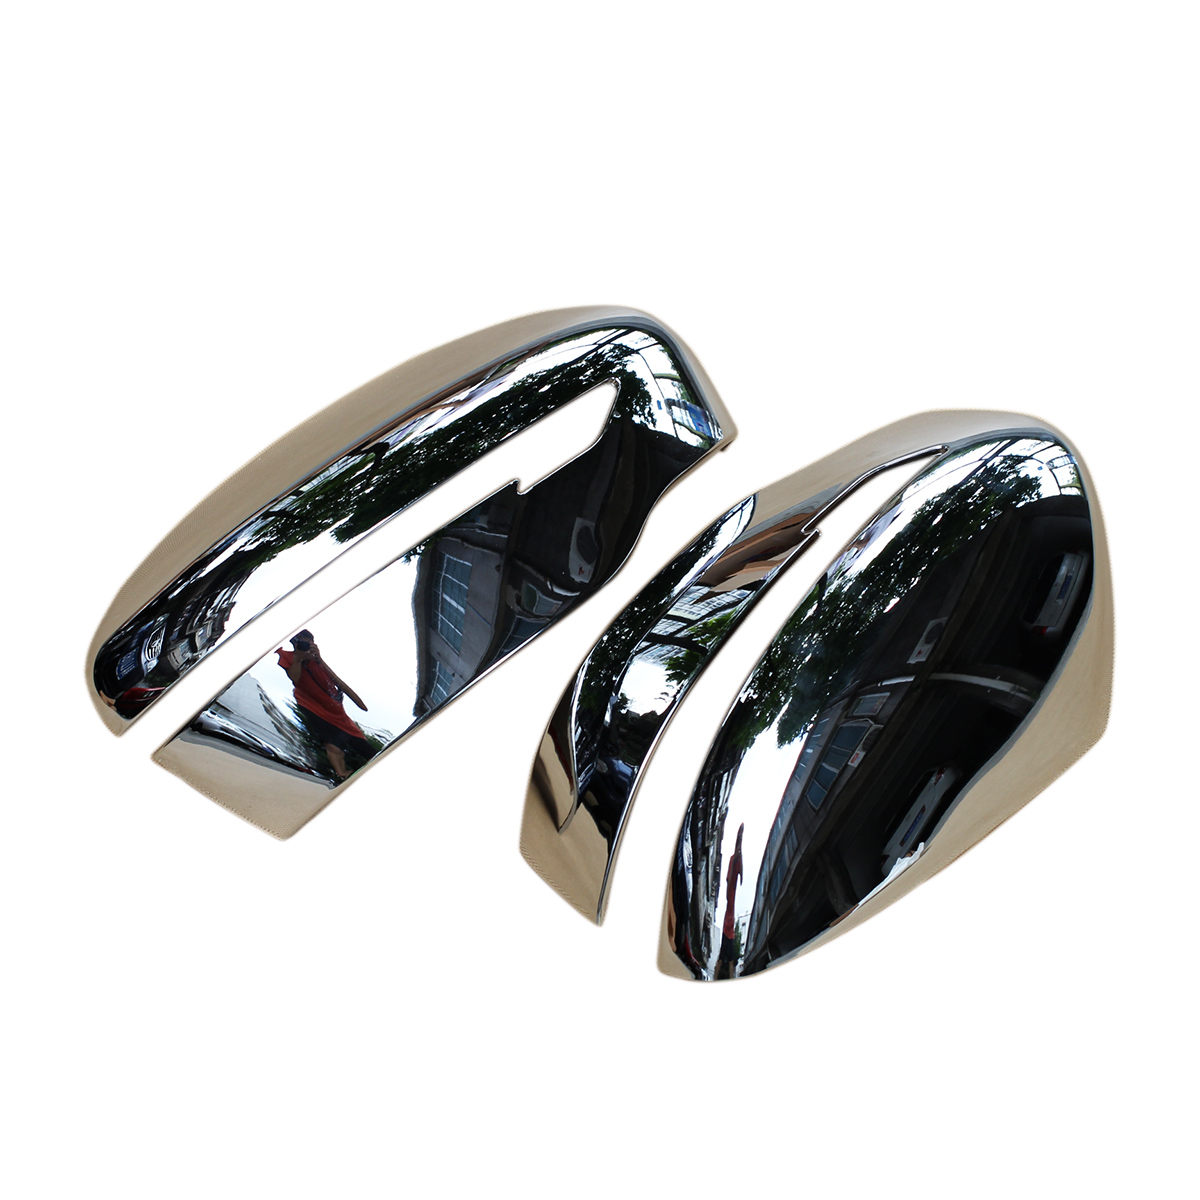 For Nissan Rogue sport 2017-2019 Chrome Side Door Handle cup Bowl Cover Trim